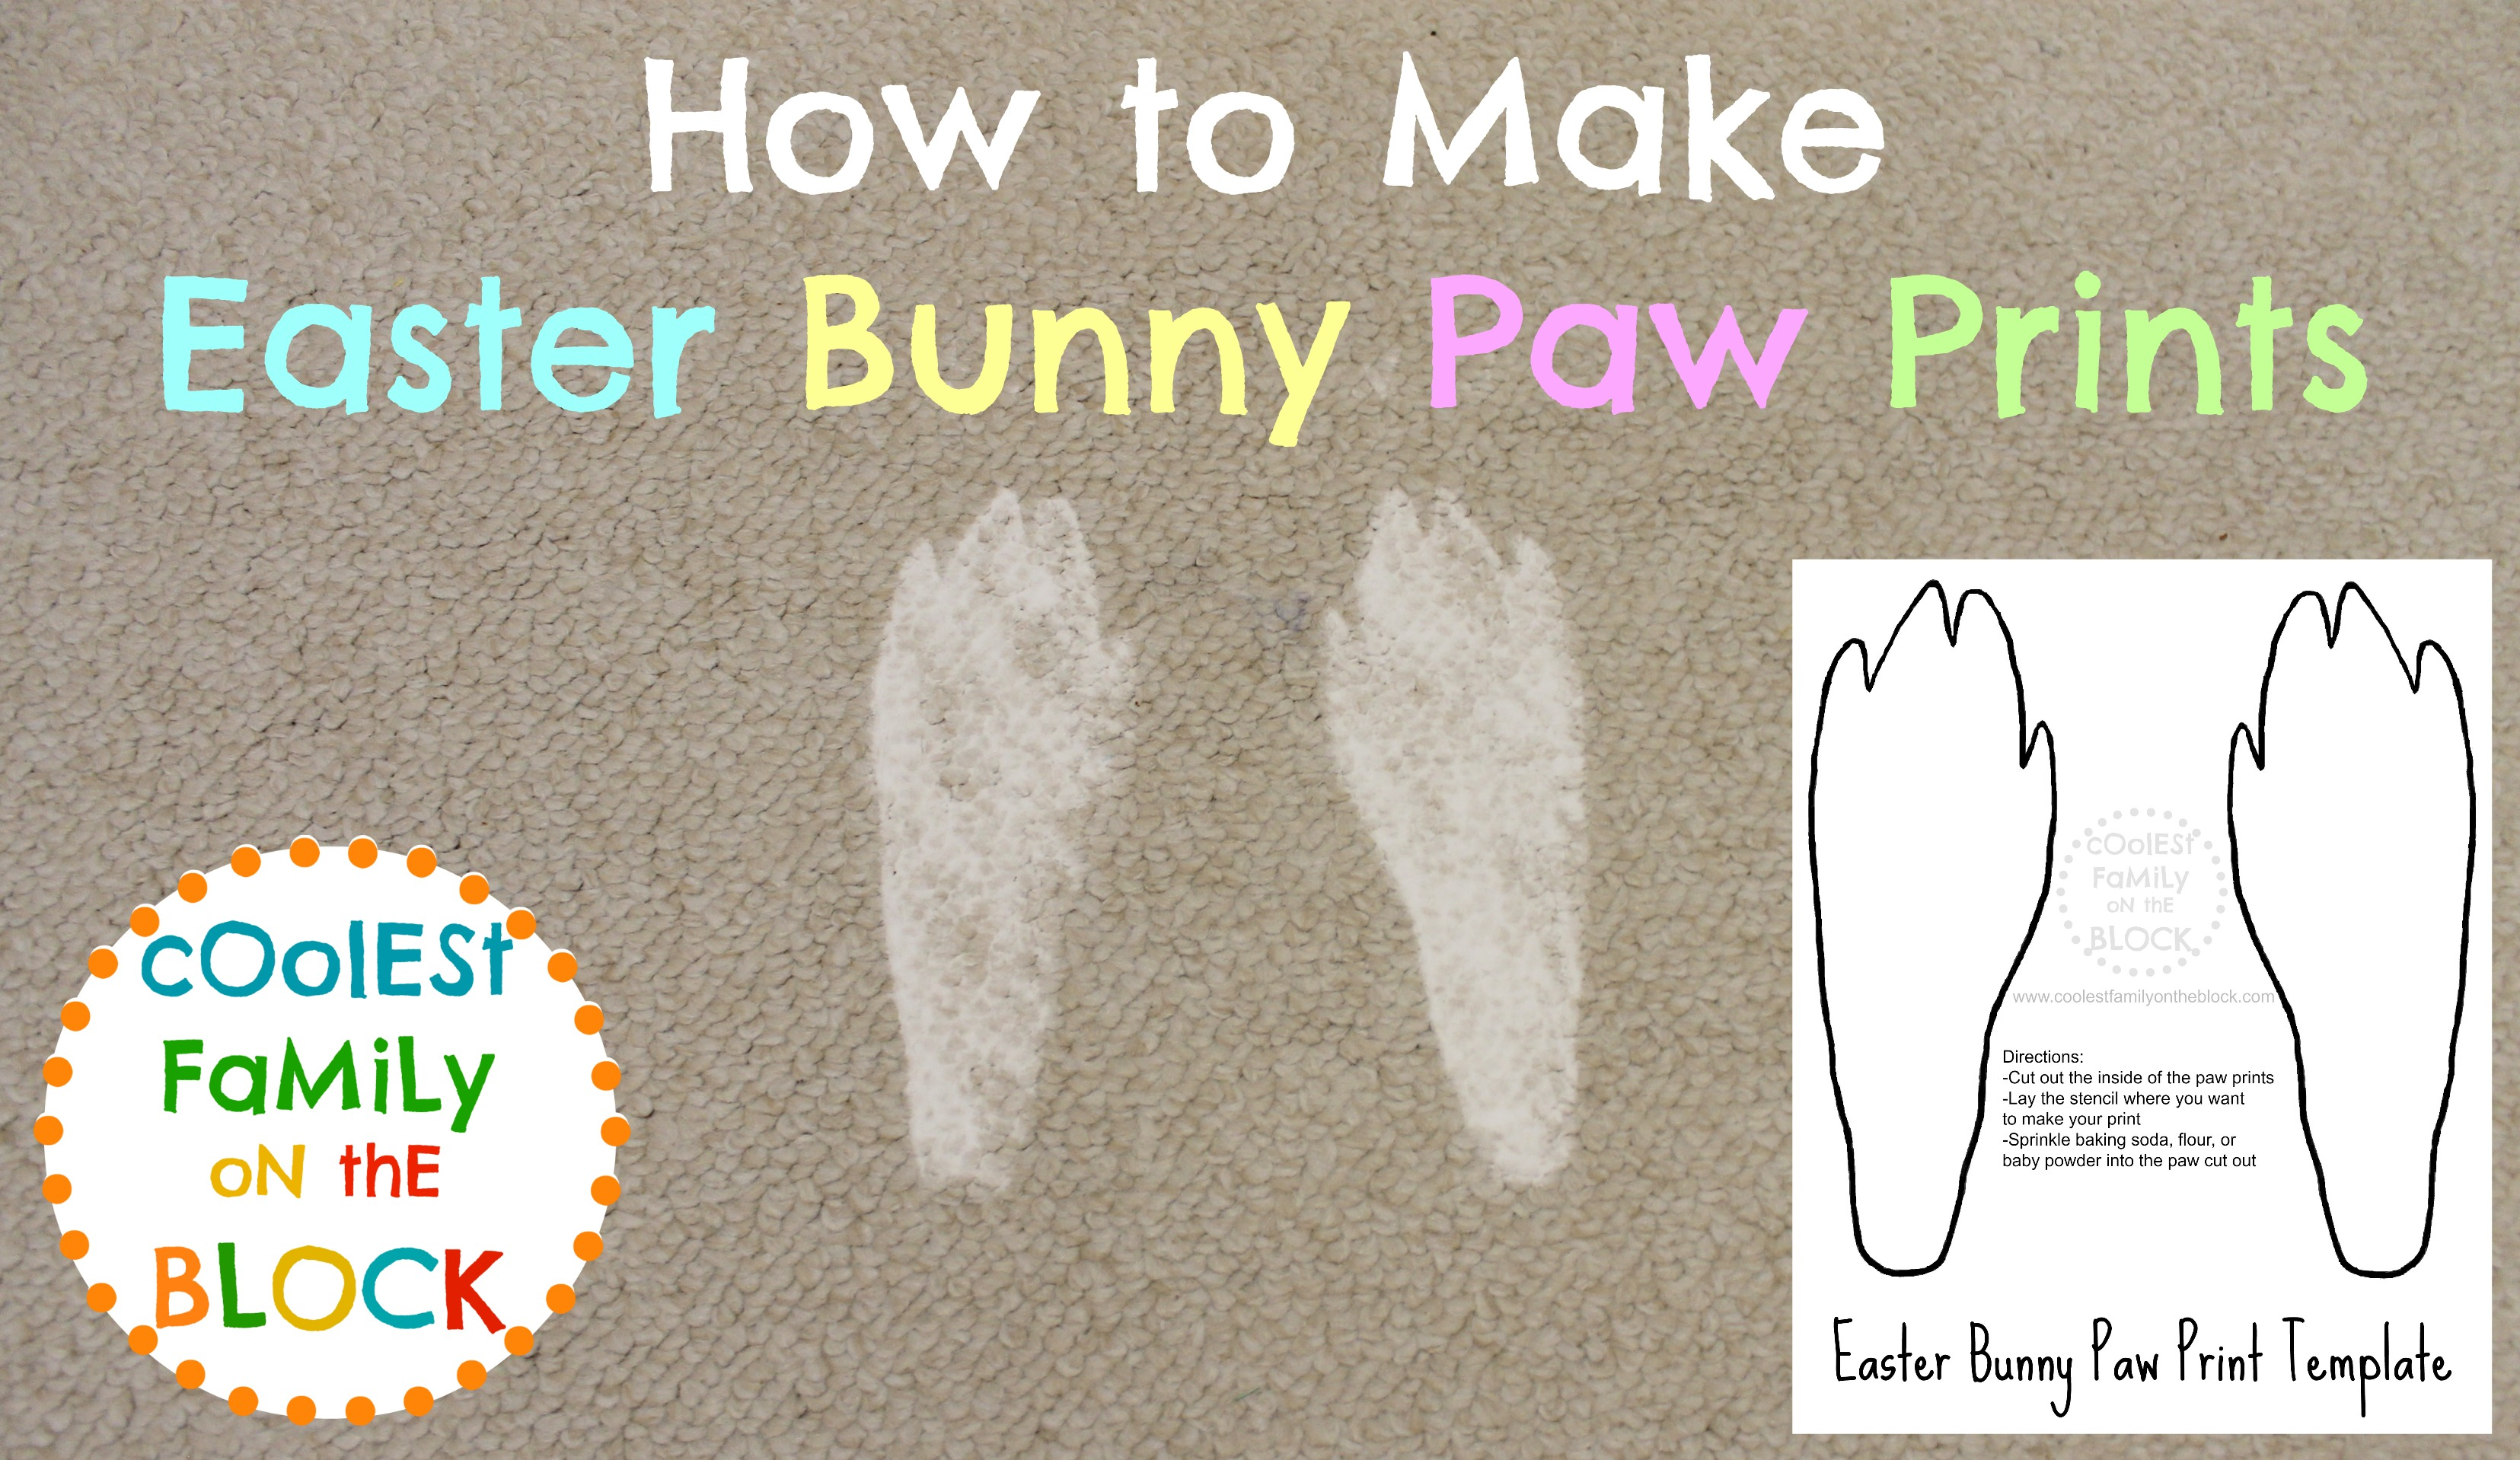 Easter Bunny Footprints Printable How to make easter bunny paw